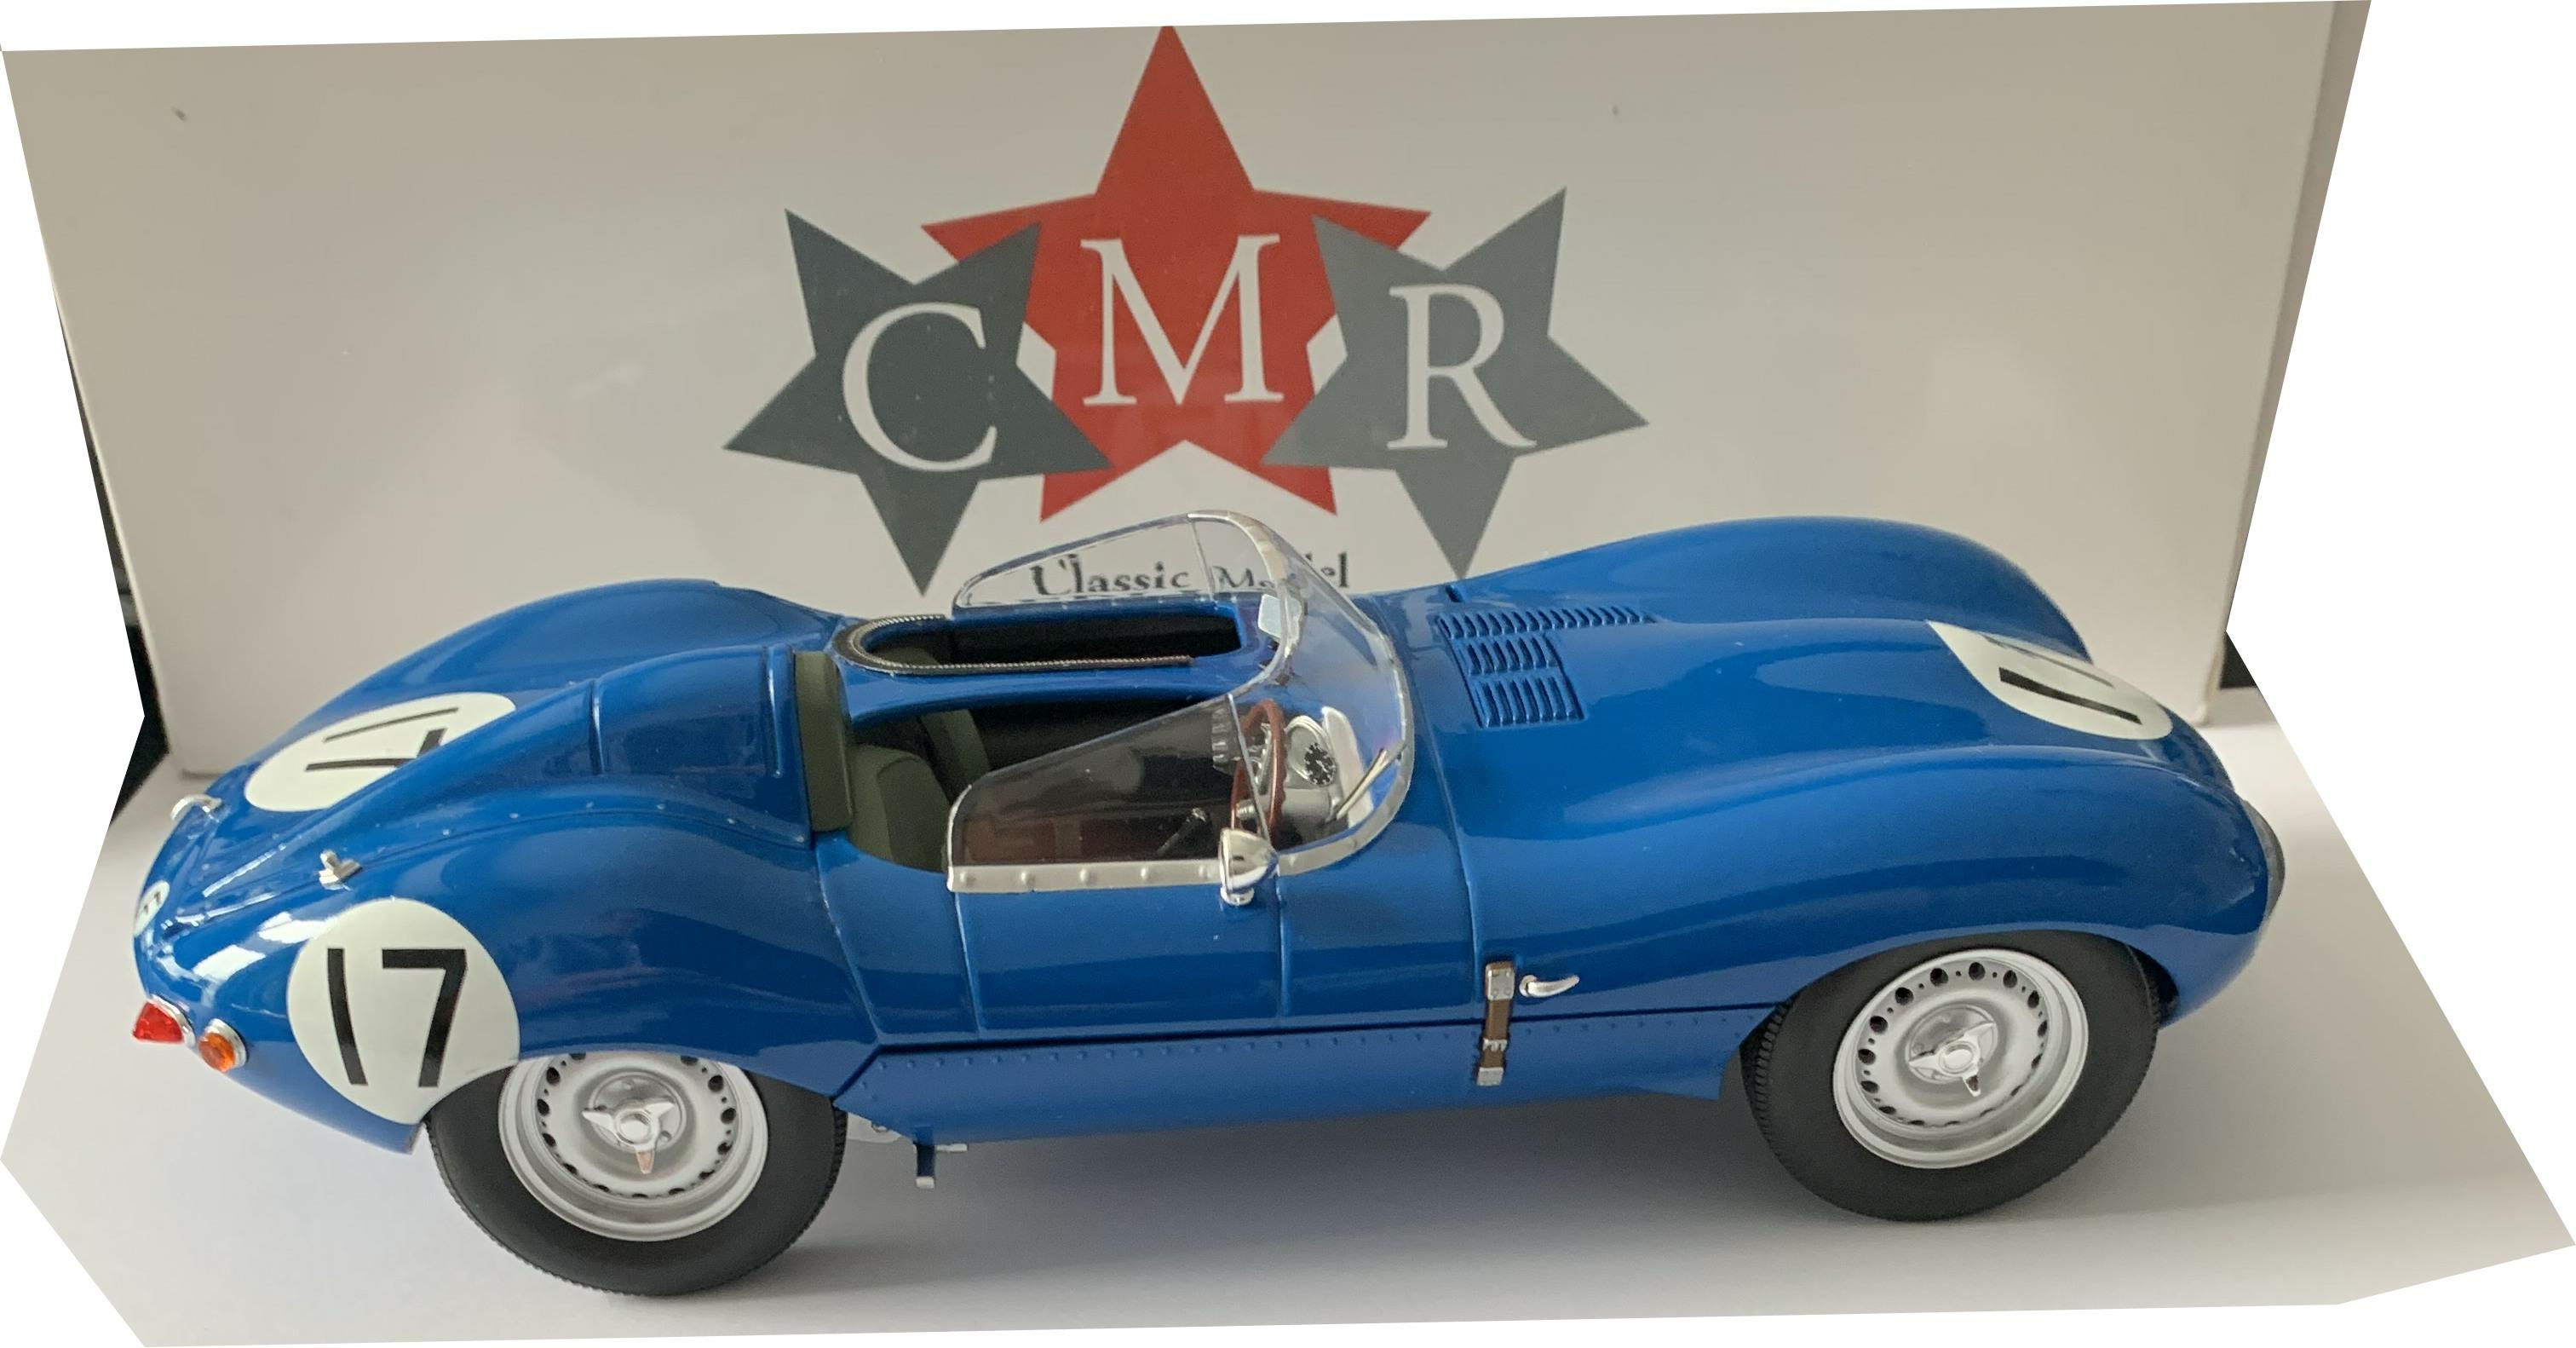 CMR Classic Model Replicars 1:18 scale